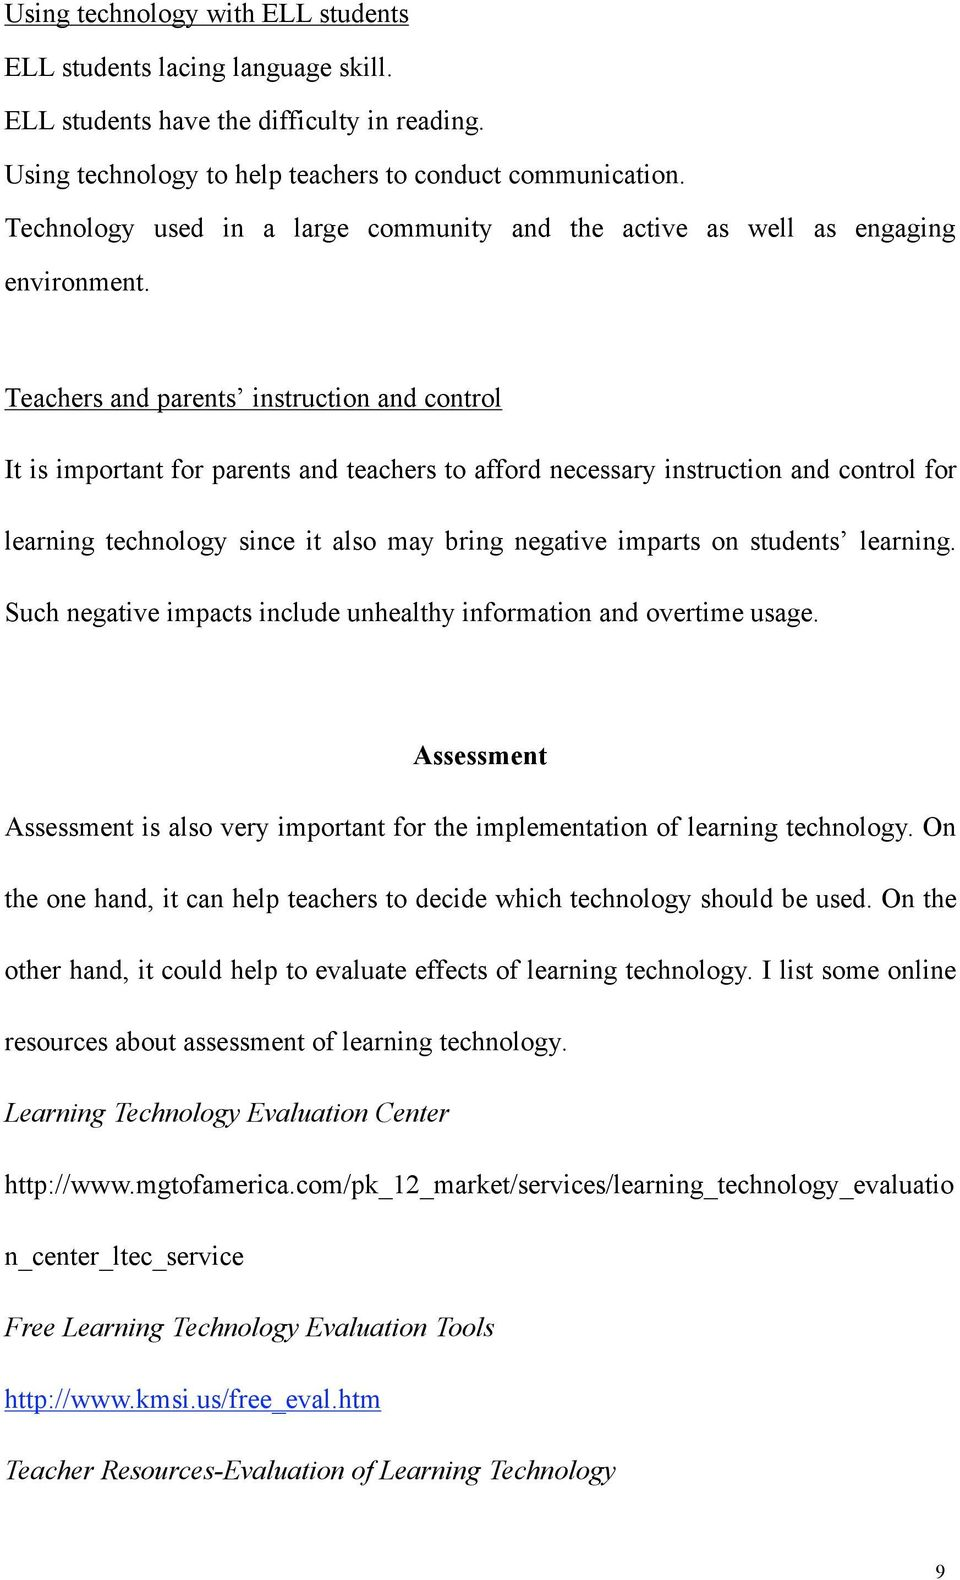 Teachers and parents instruction and control It is important for parents and teachers to afford necessary instruction and control for learning technology since it also may bring negative imparts on